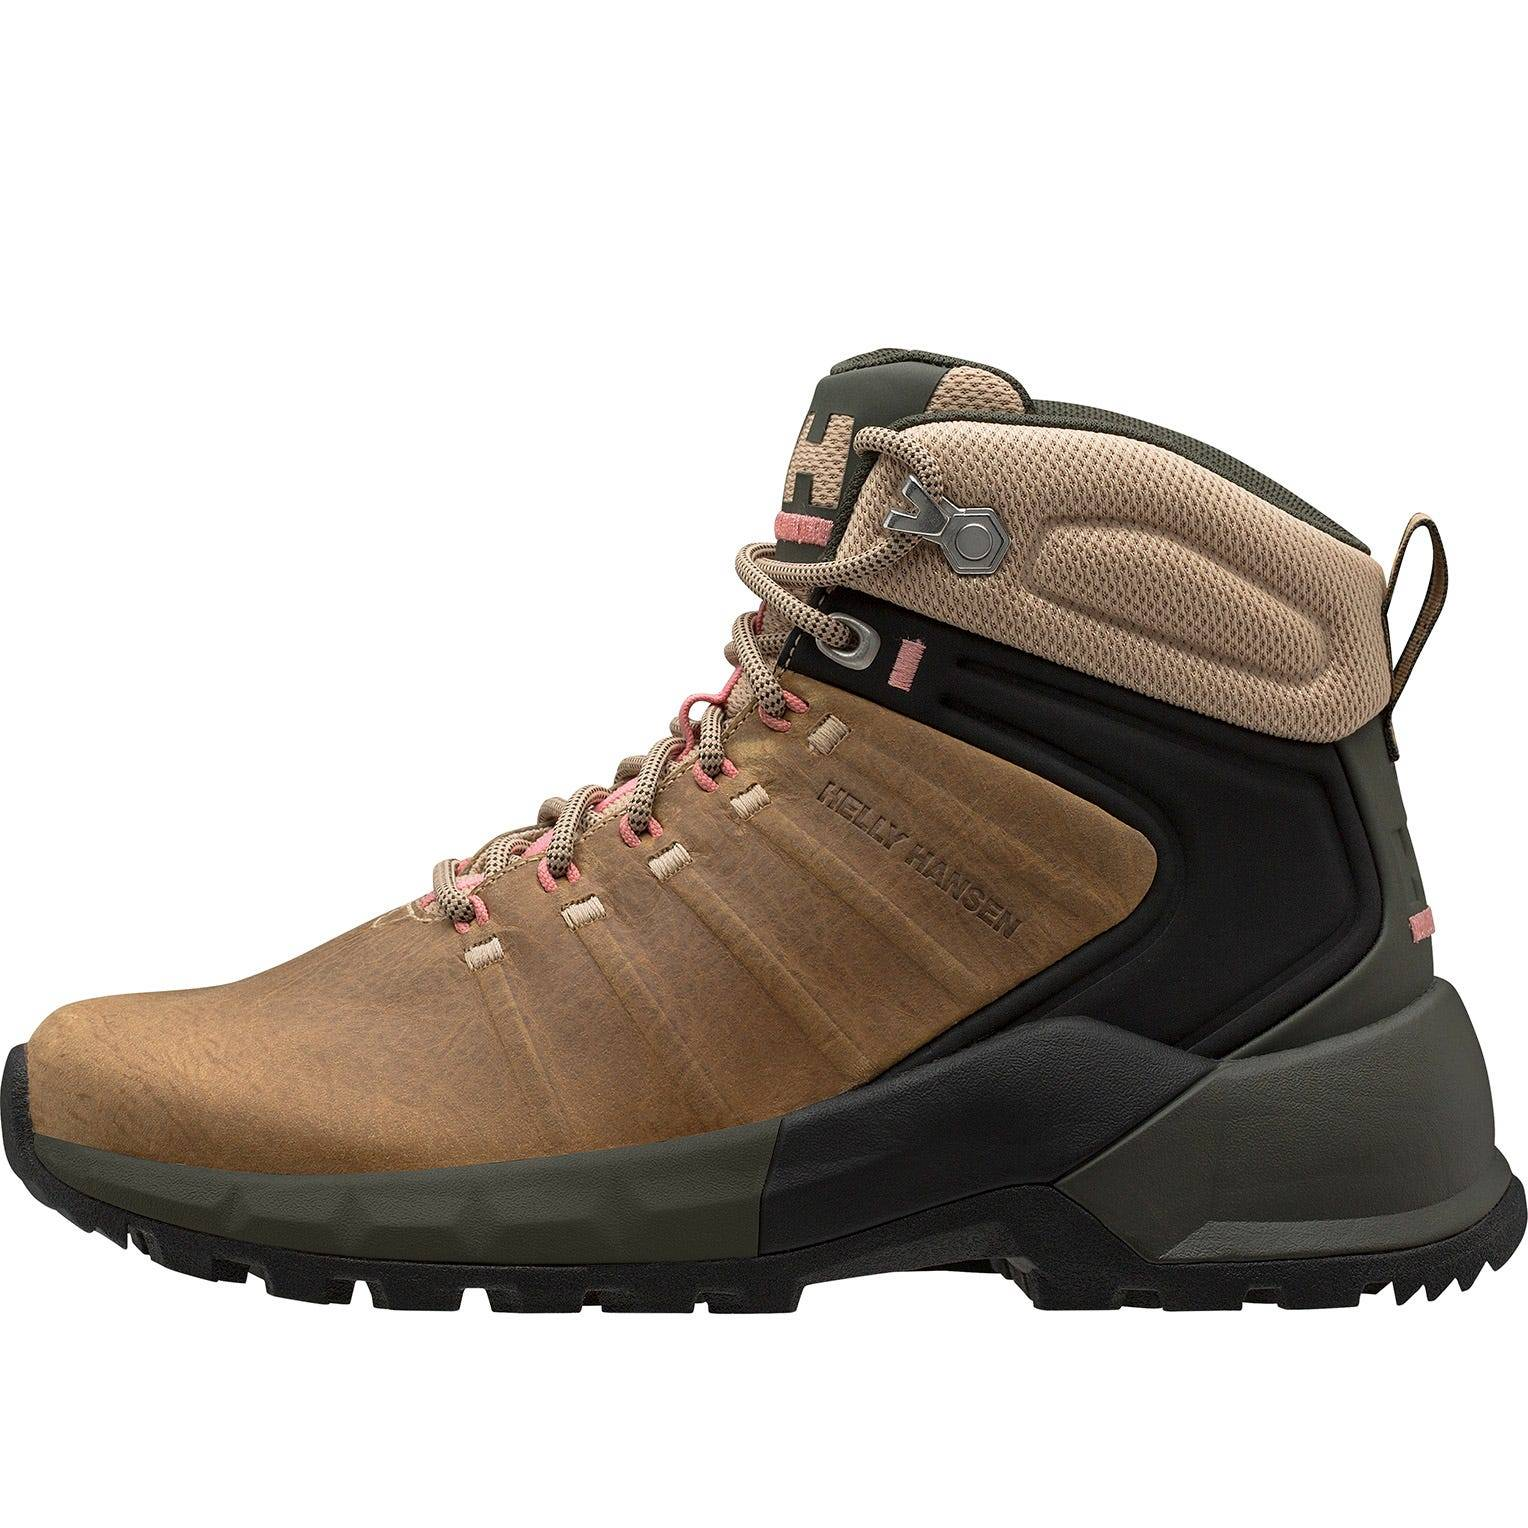 Helly Hansen W Pinecliff Boot Womens Hiking Yellow 39.3/8